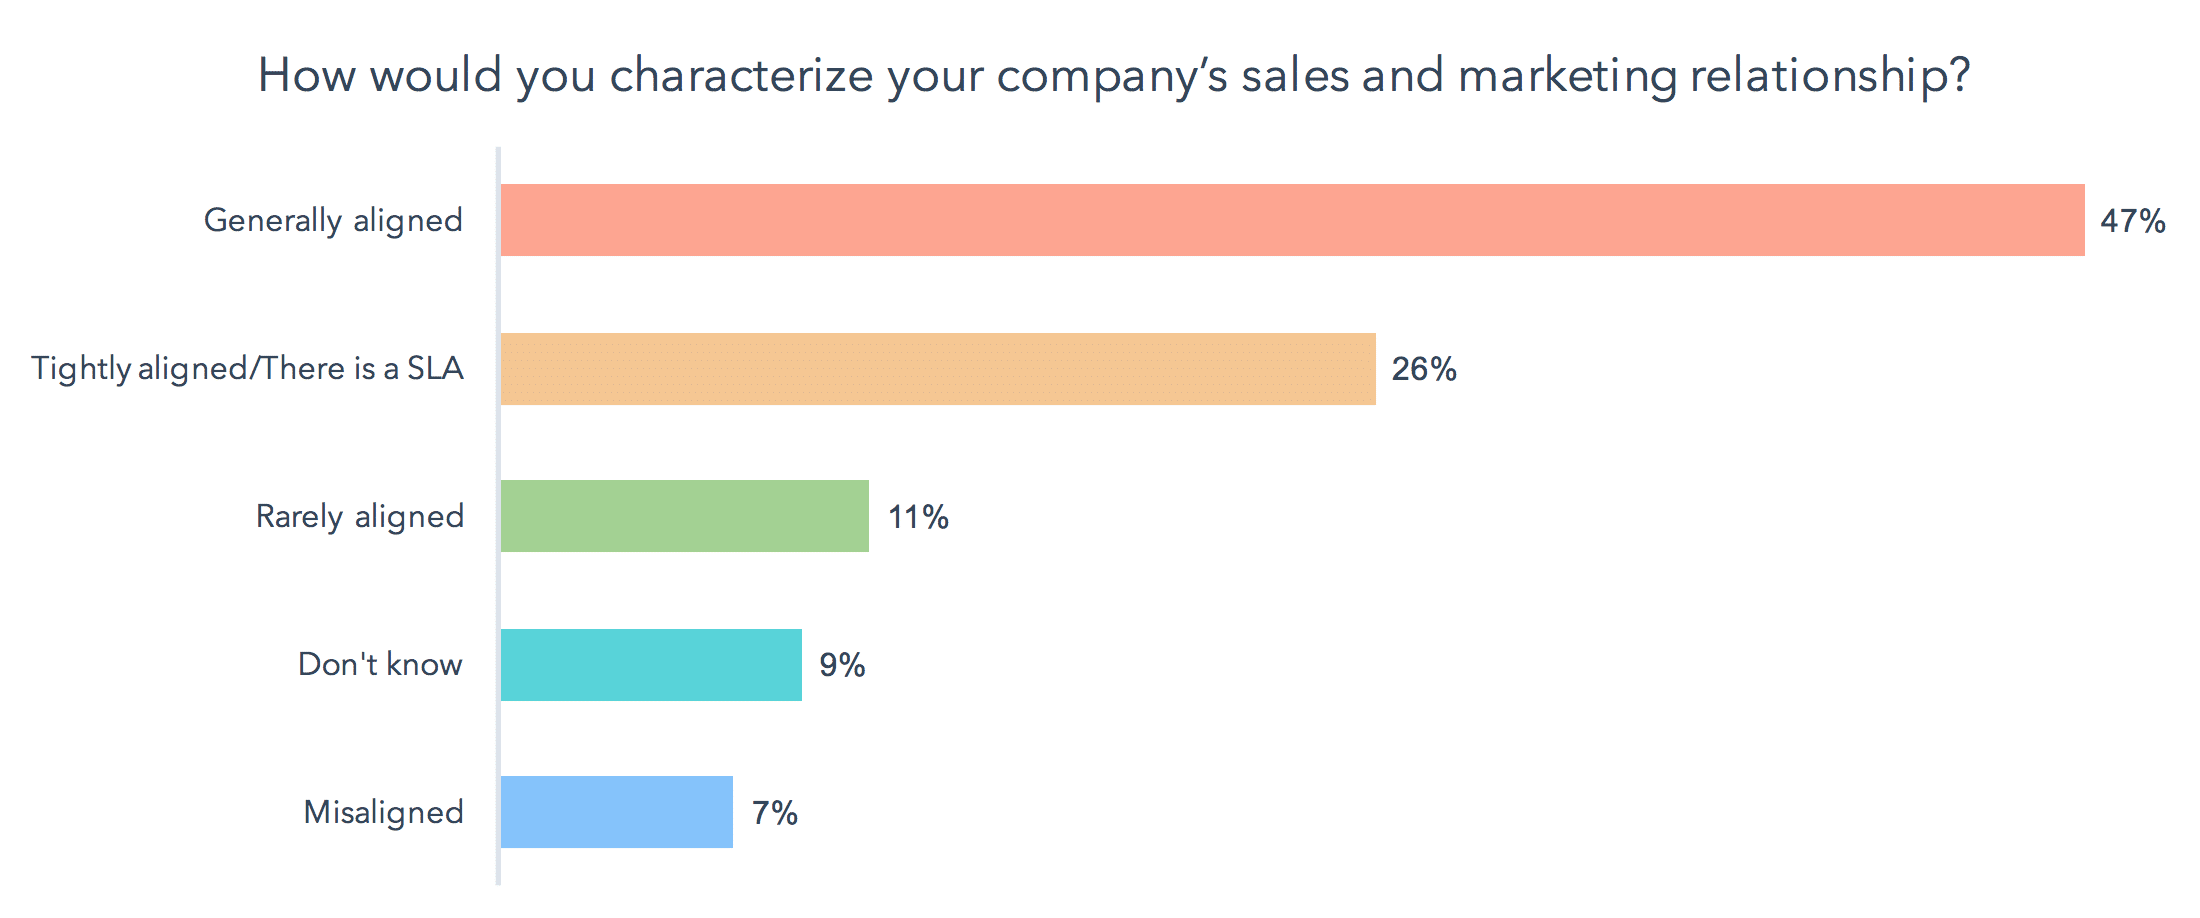 Just 26% of respondents operate under a marketing and sales SLA